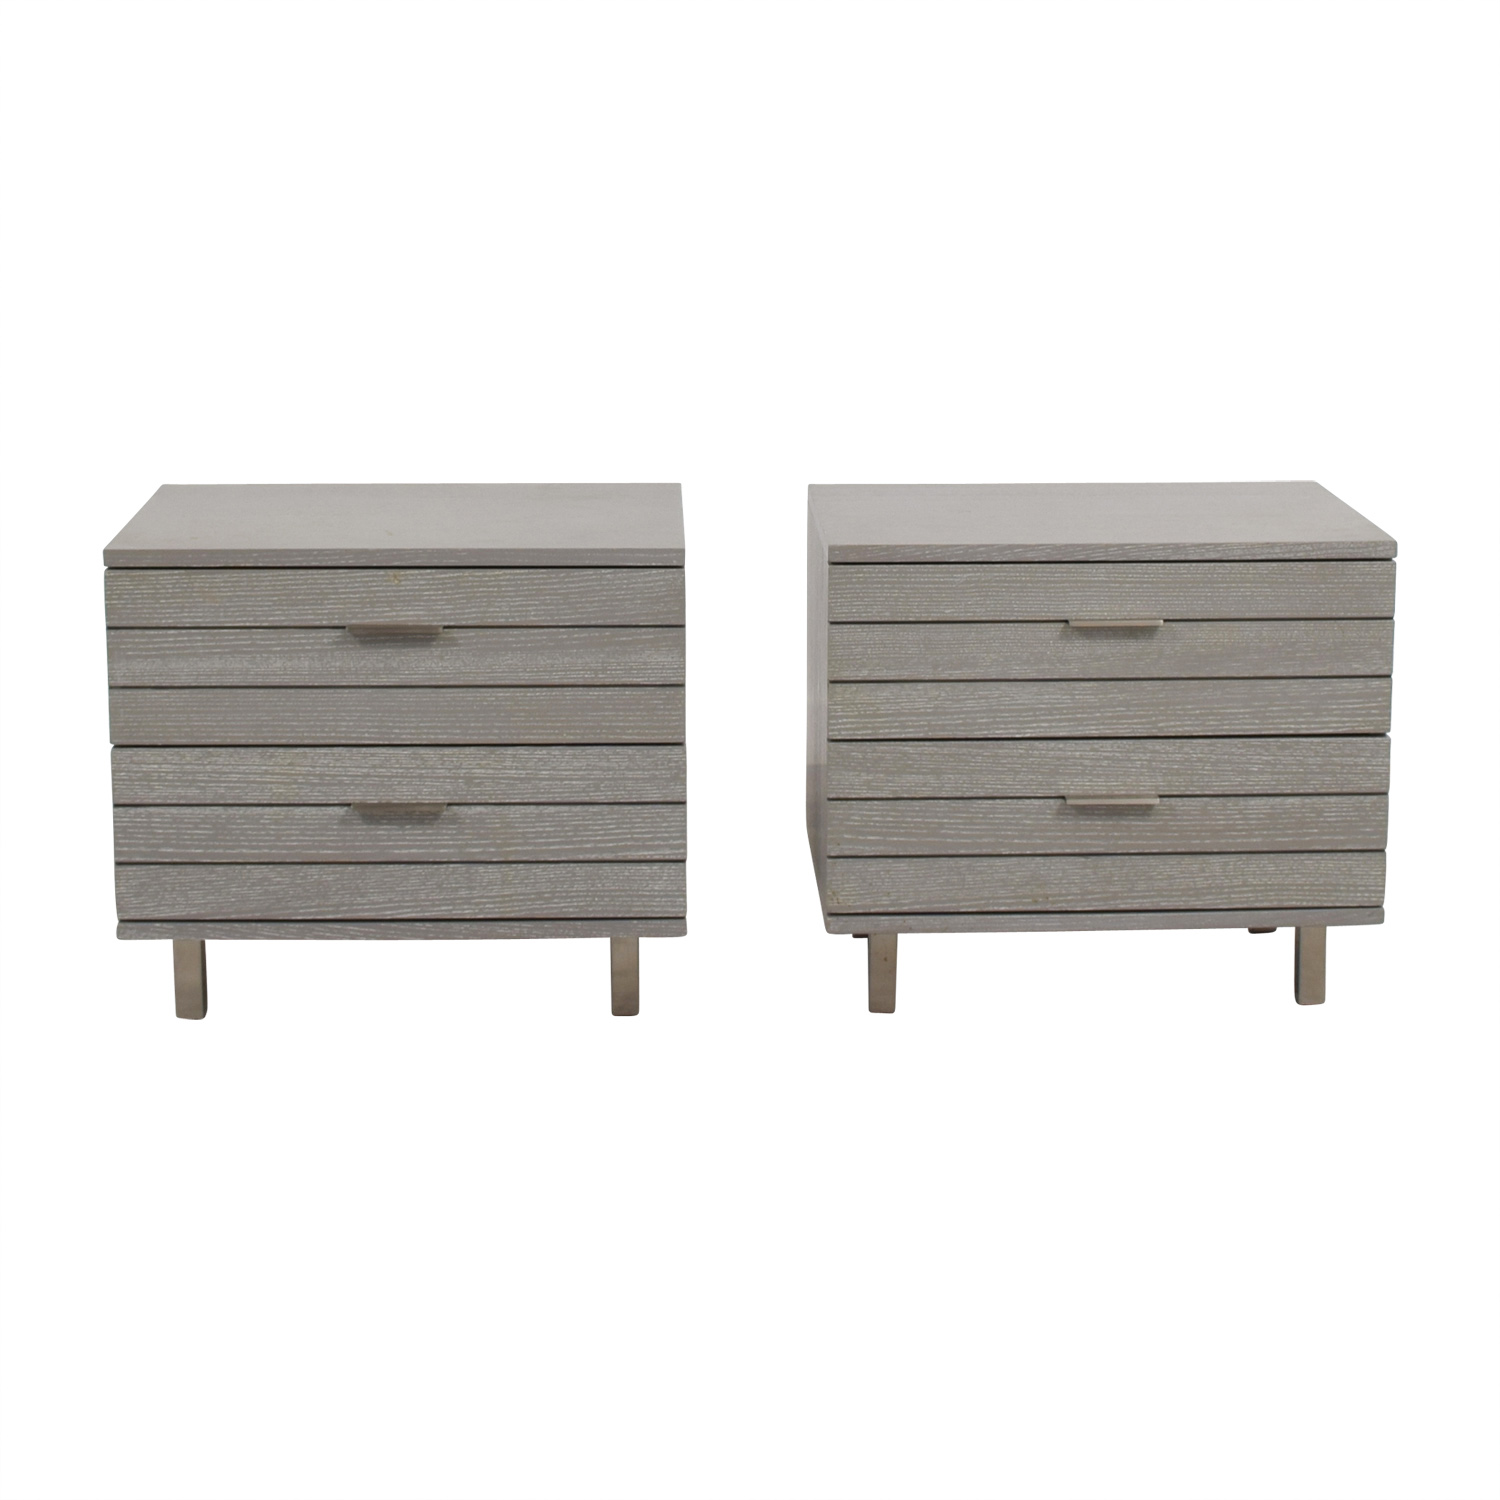 shop CB2 CB2 Grey Two-Drawer Night Stands online